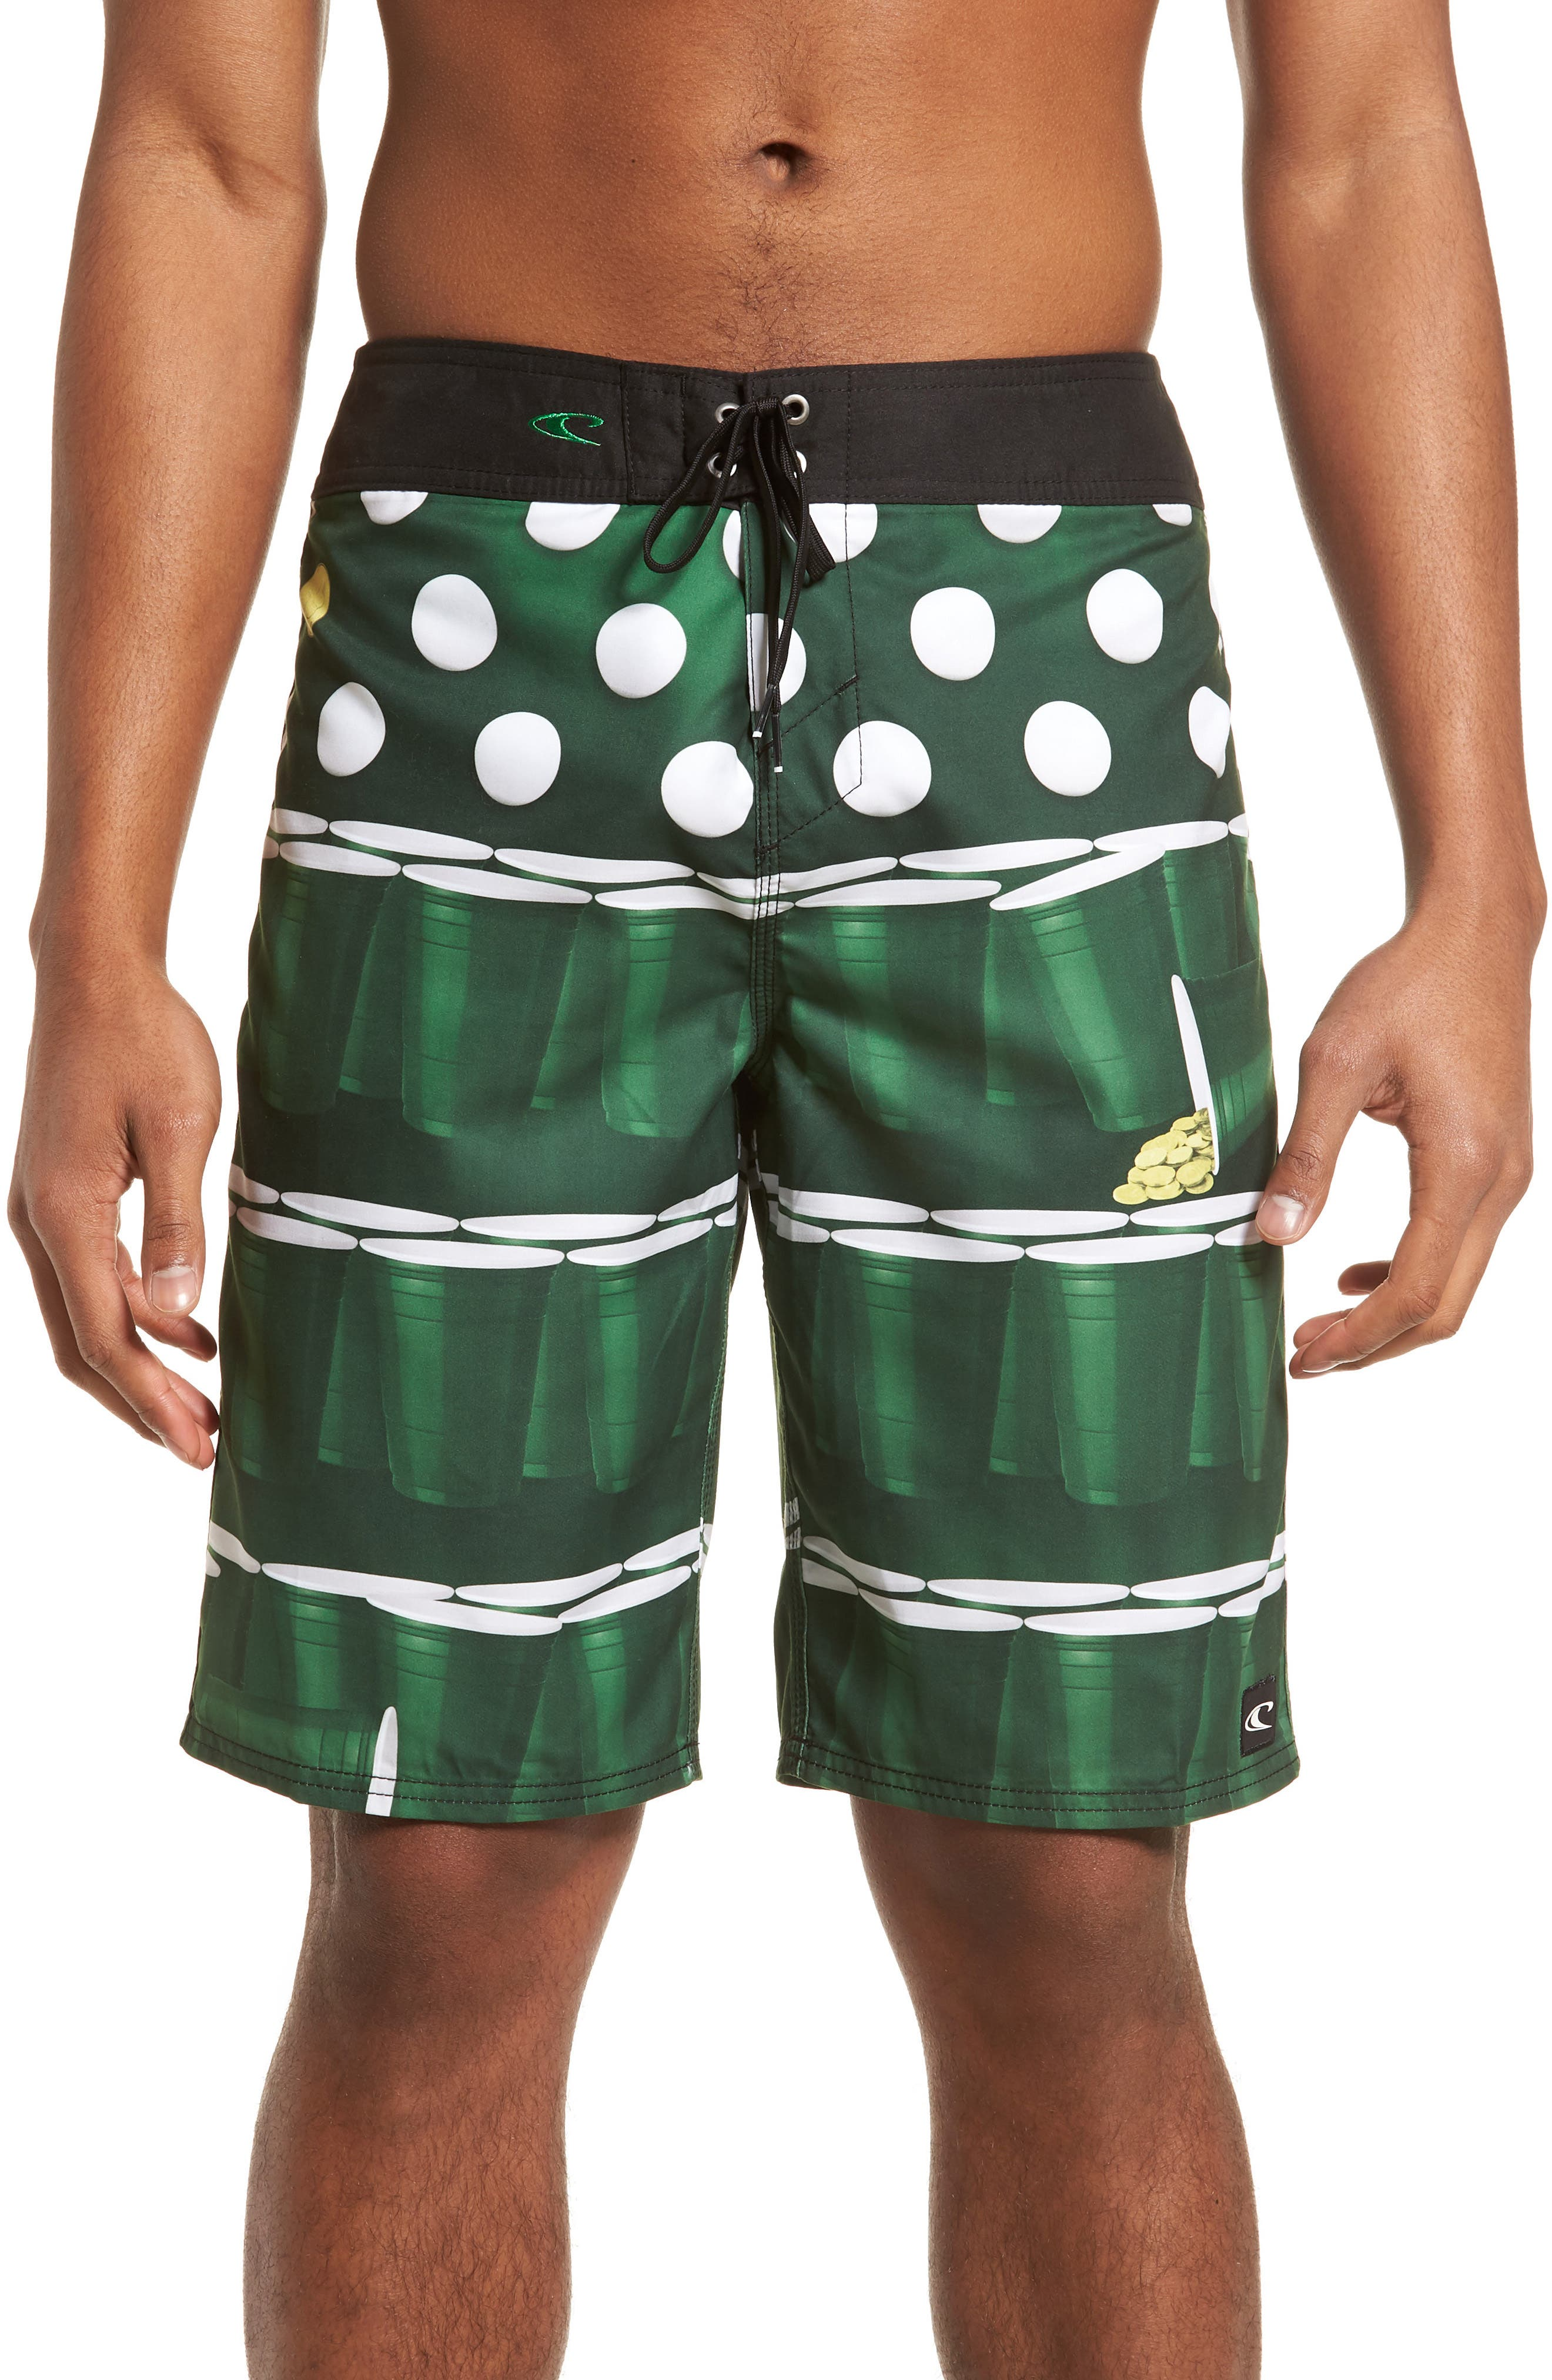 Alternate Image 1 Selected - O'Neill St. Paddy's Pong Board Shorts